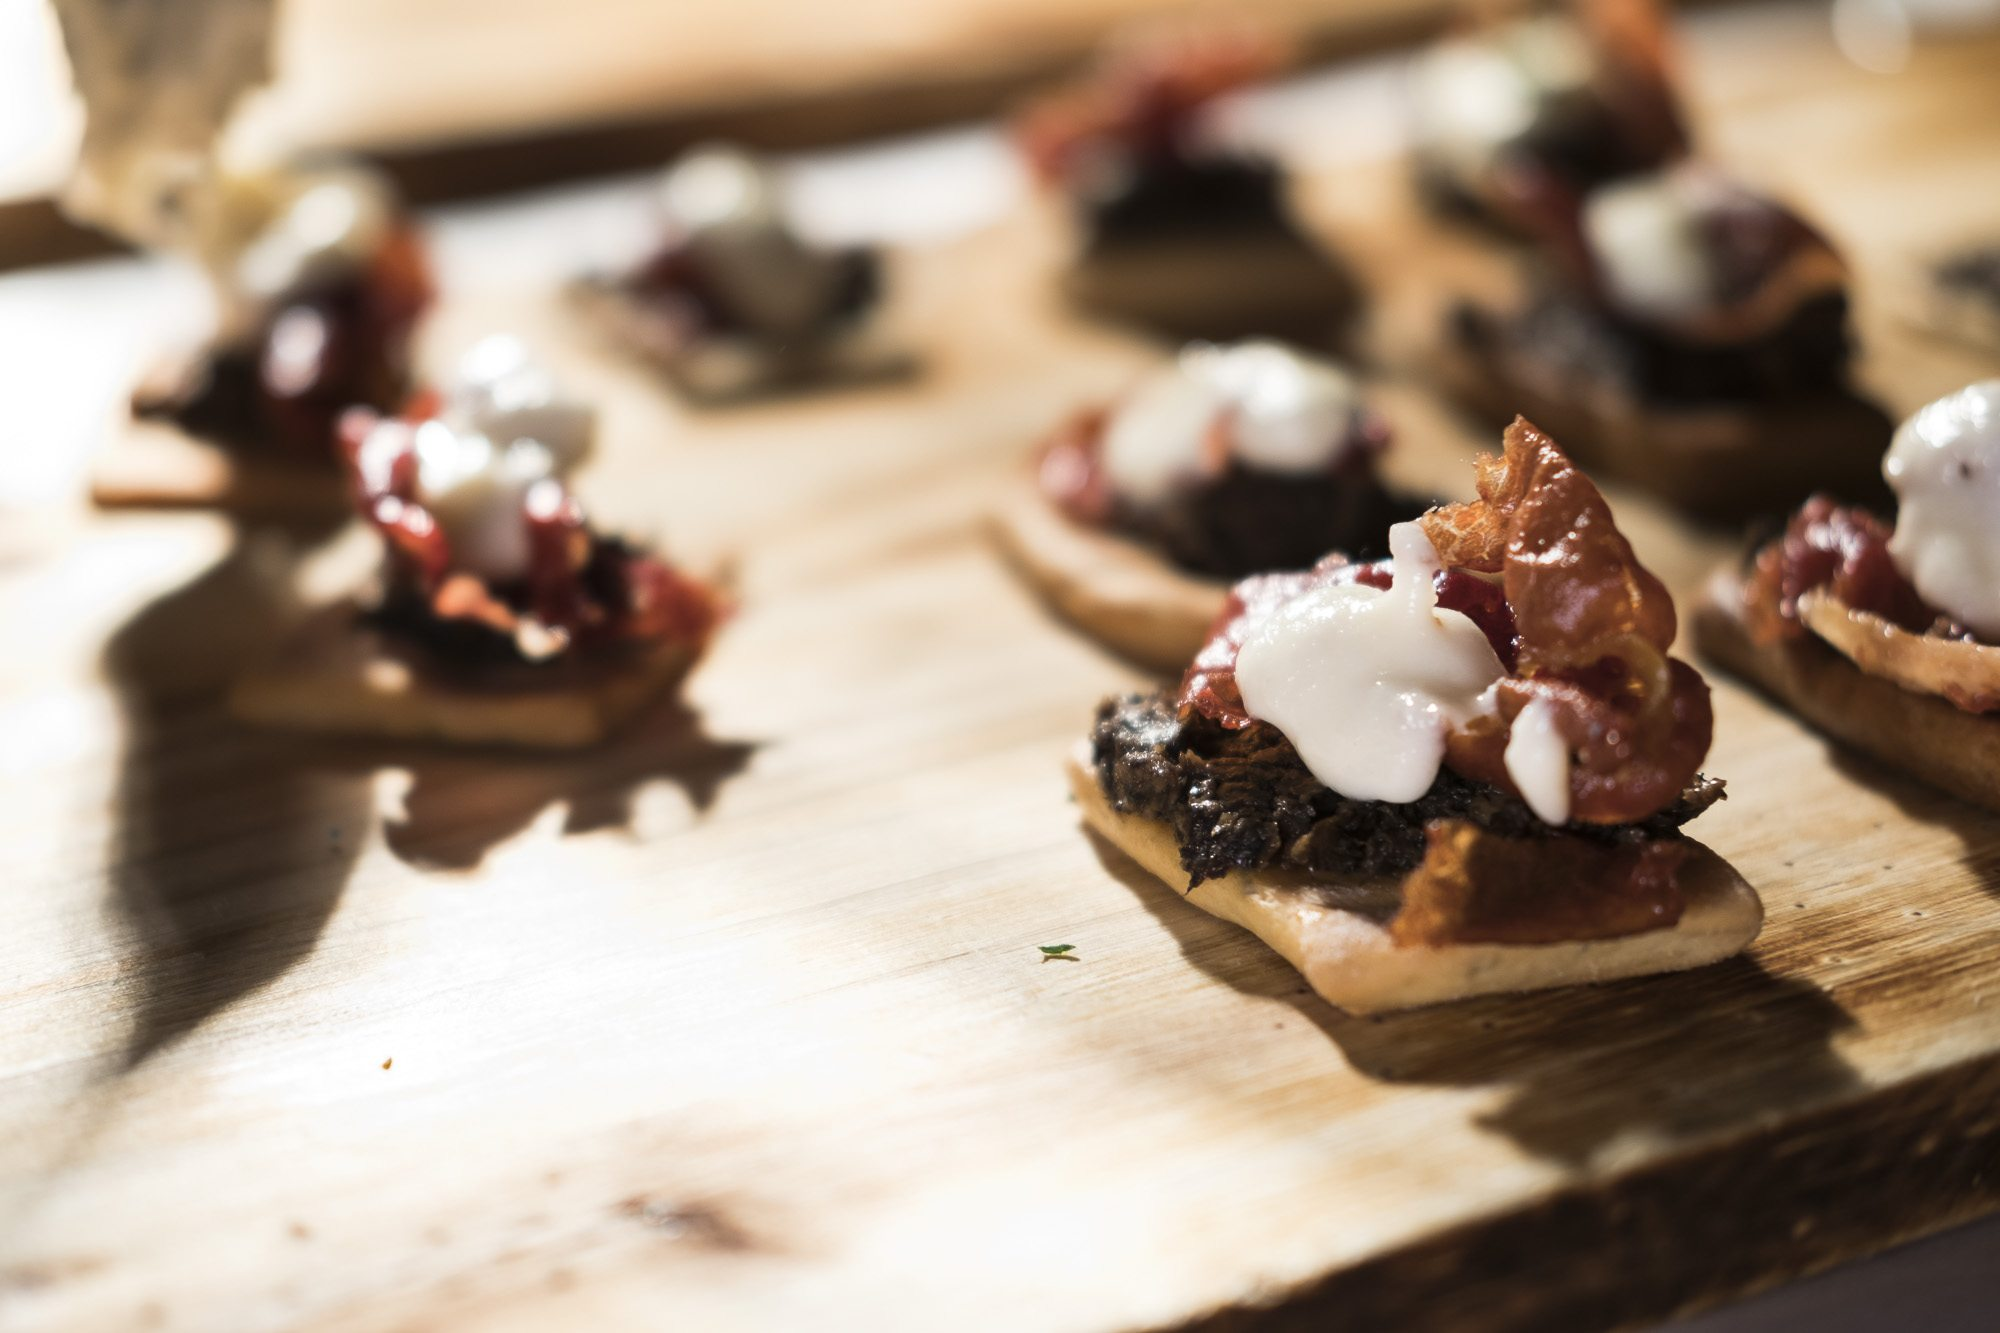 toronto-food-events-trashed-and-wasted-all-garbage-artscape-wychwood-barns-oliver-bonacini-prosciutto